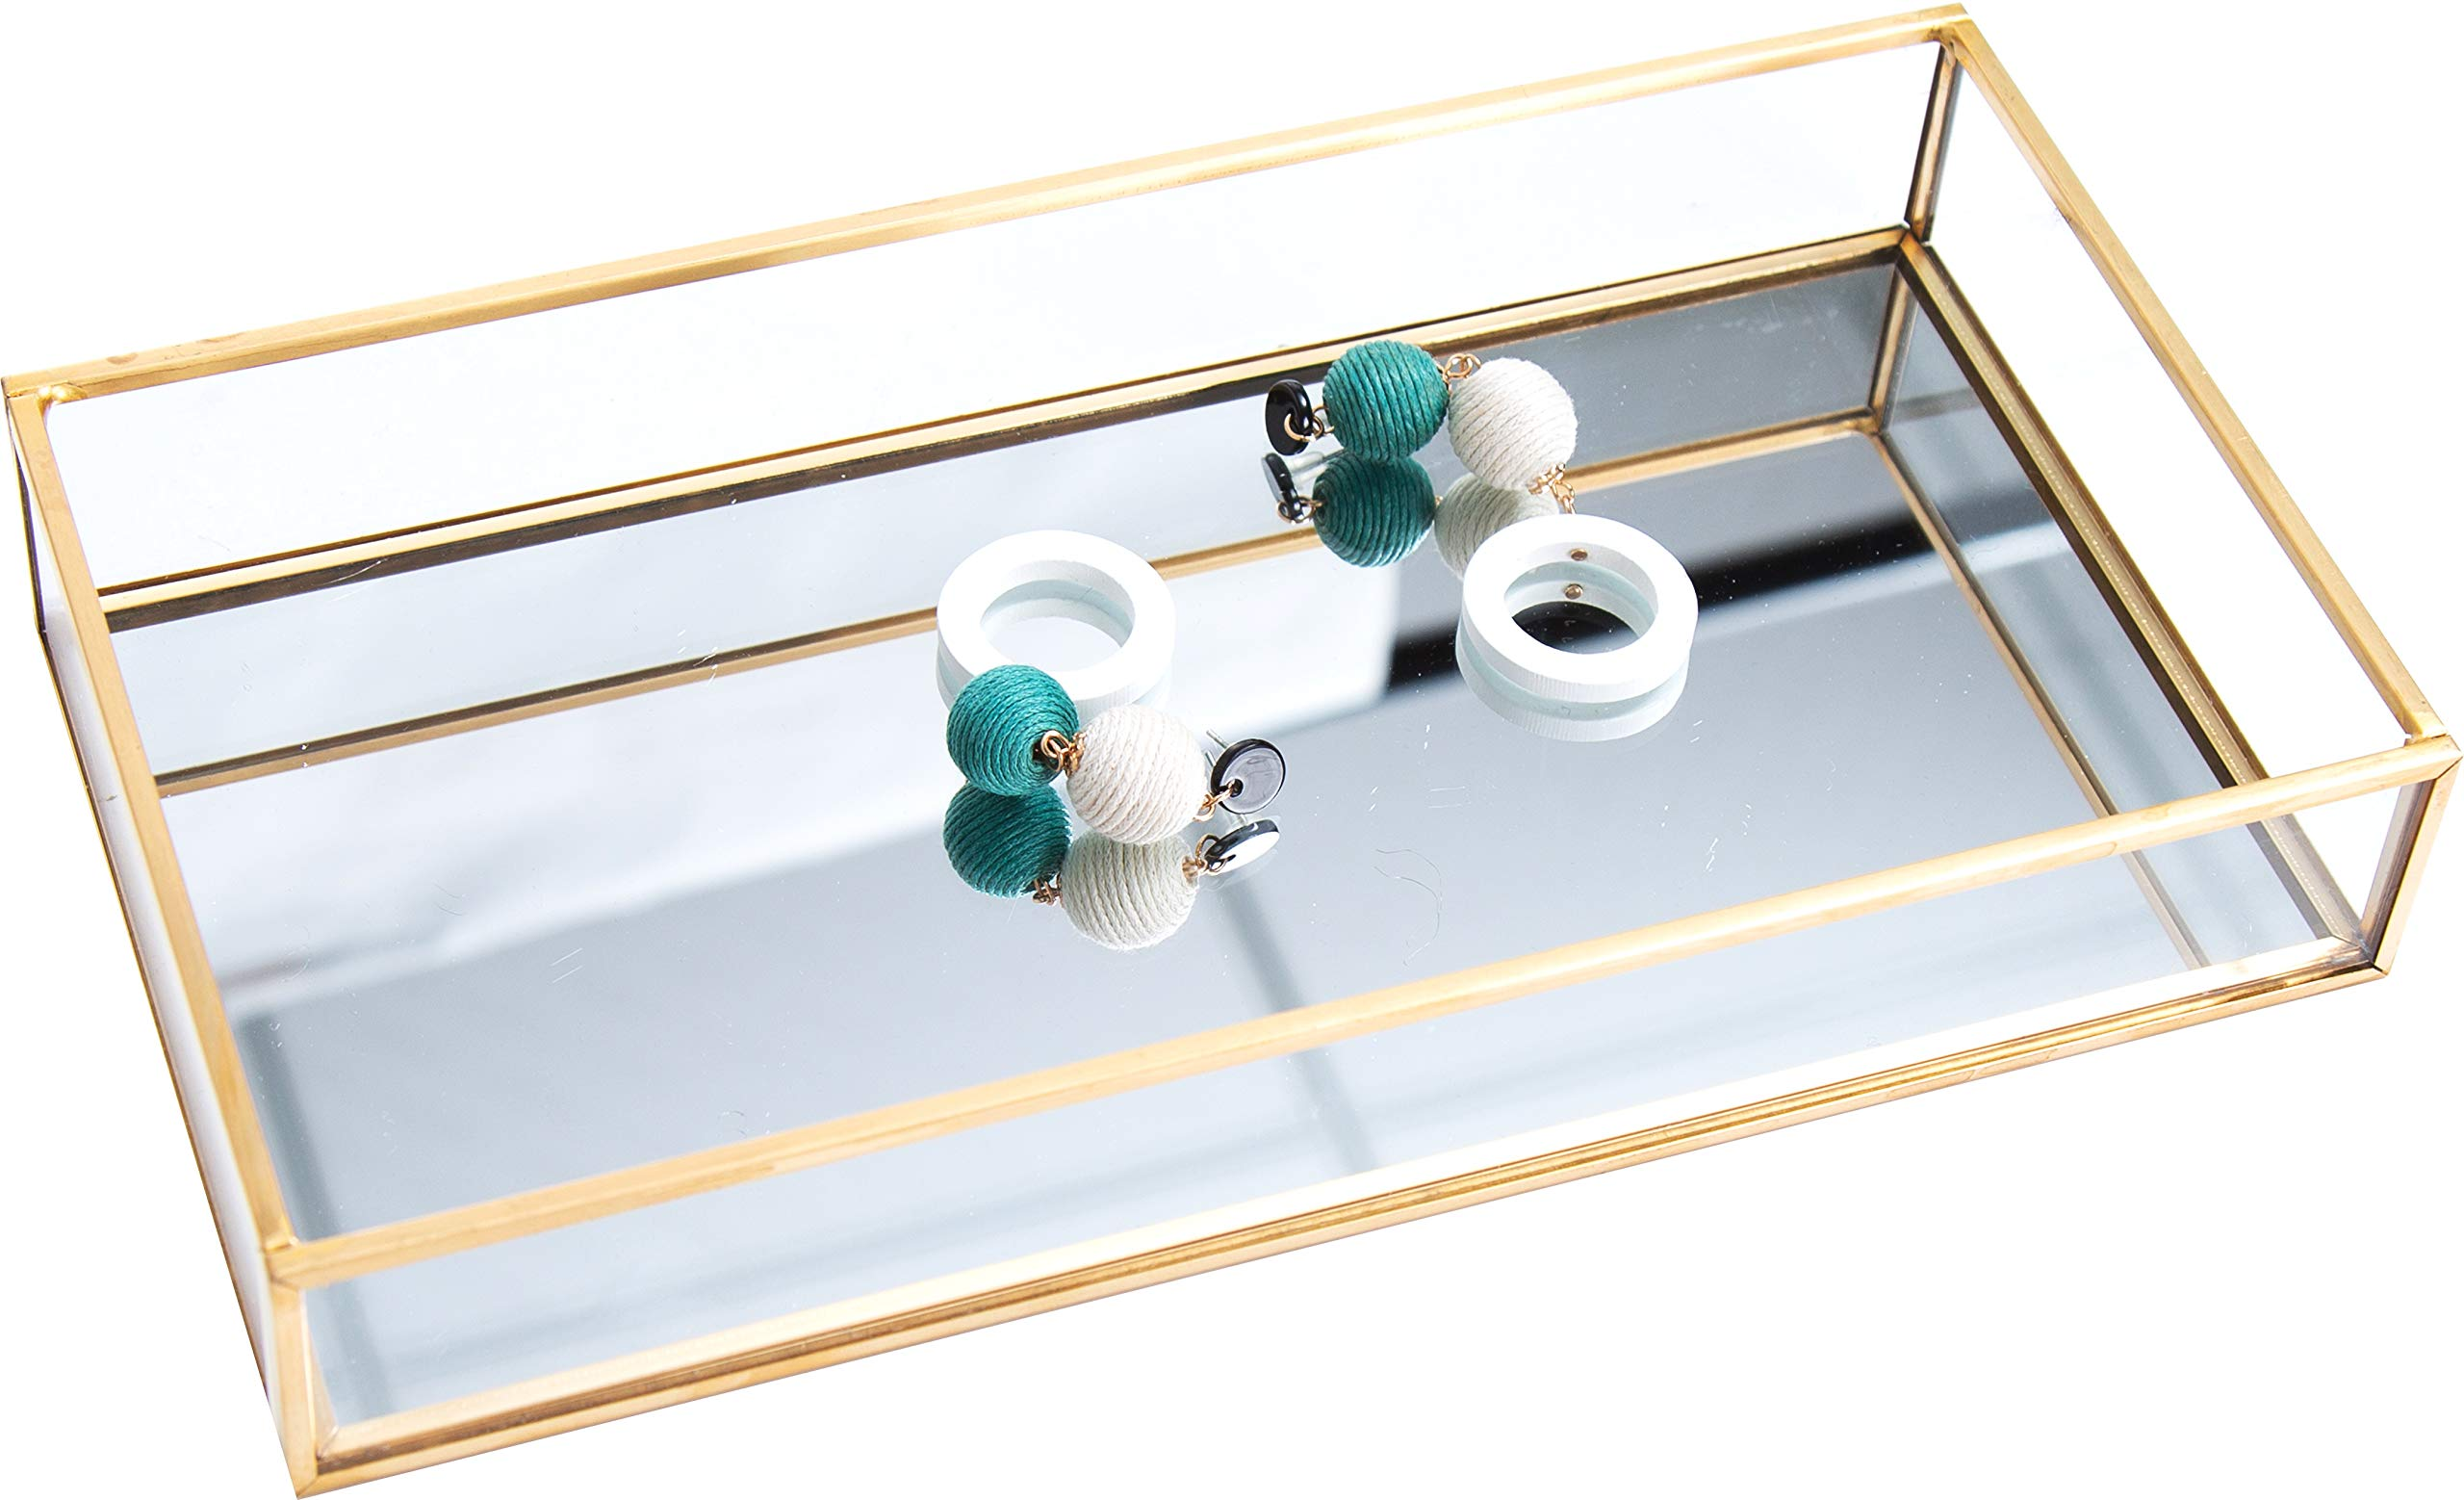 Cq acrylic Decorative Tray,Gold Mirror Tray for Jewelry,jewelry tray storage Organizer Makeup Tray for Vanity, Dresser, Pack of 1 by Cq acrylic